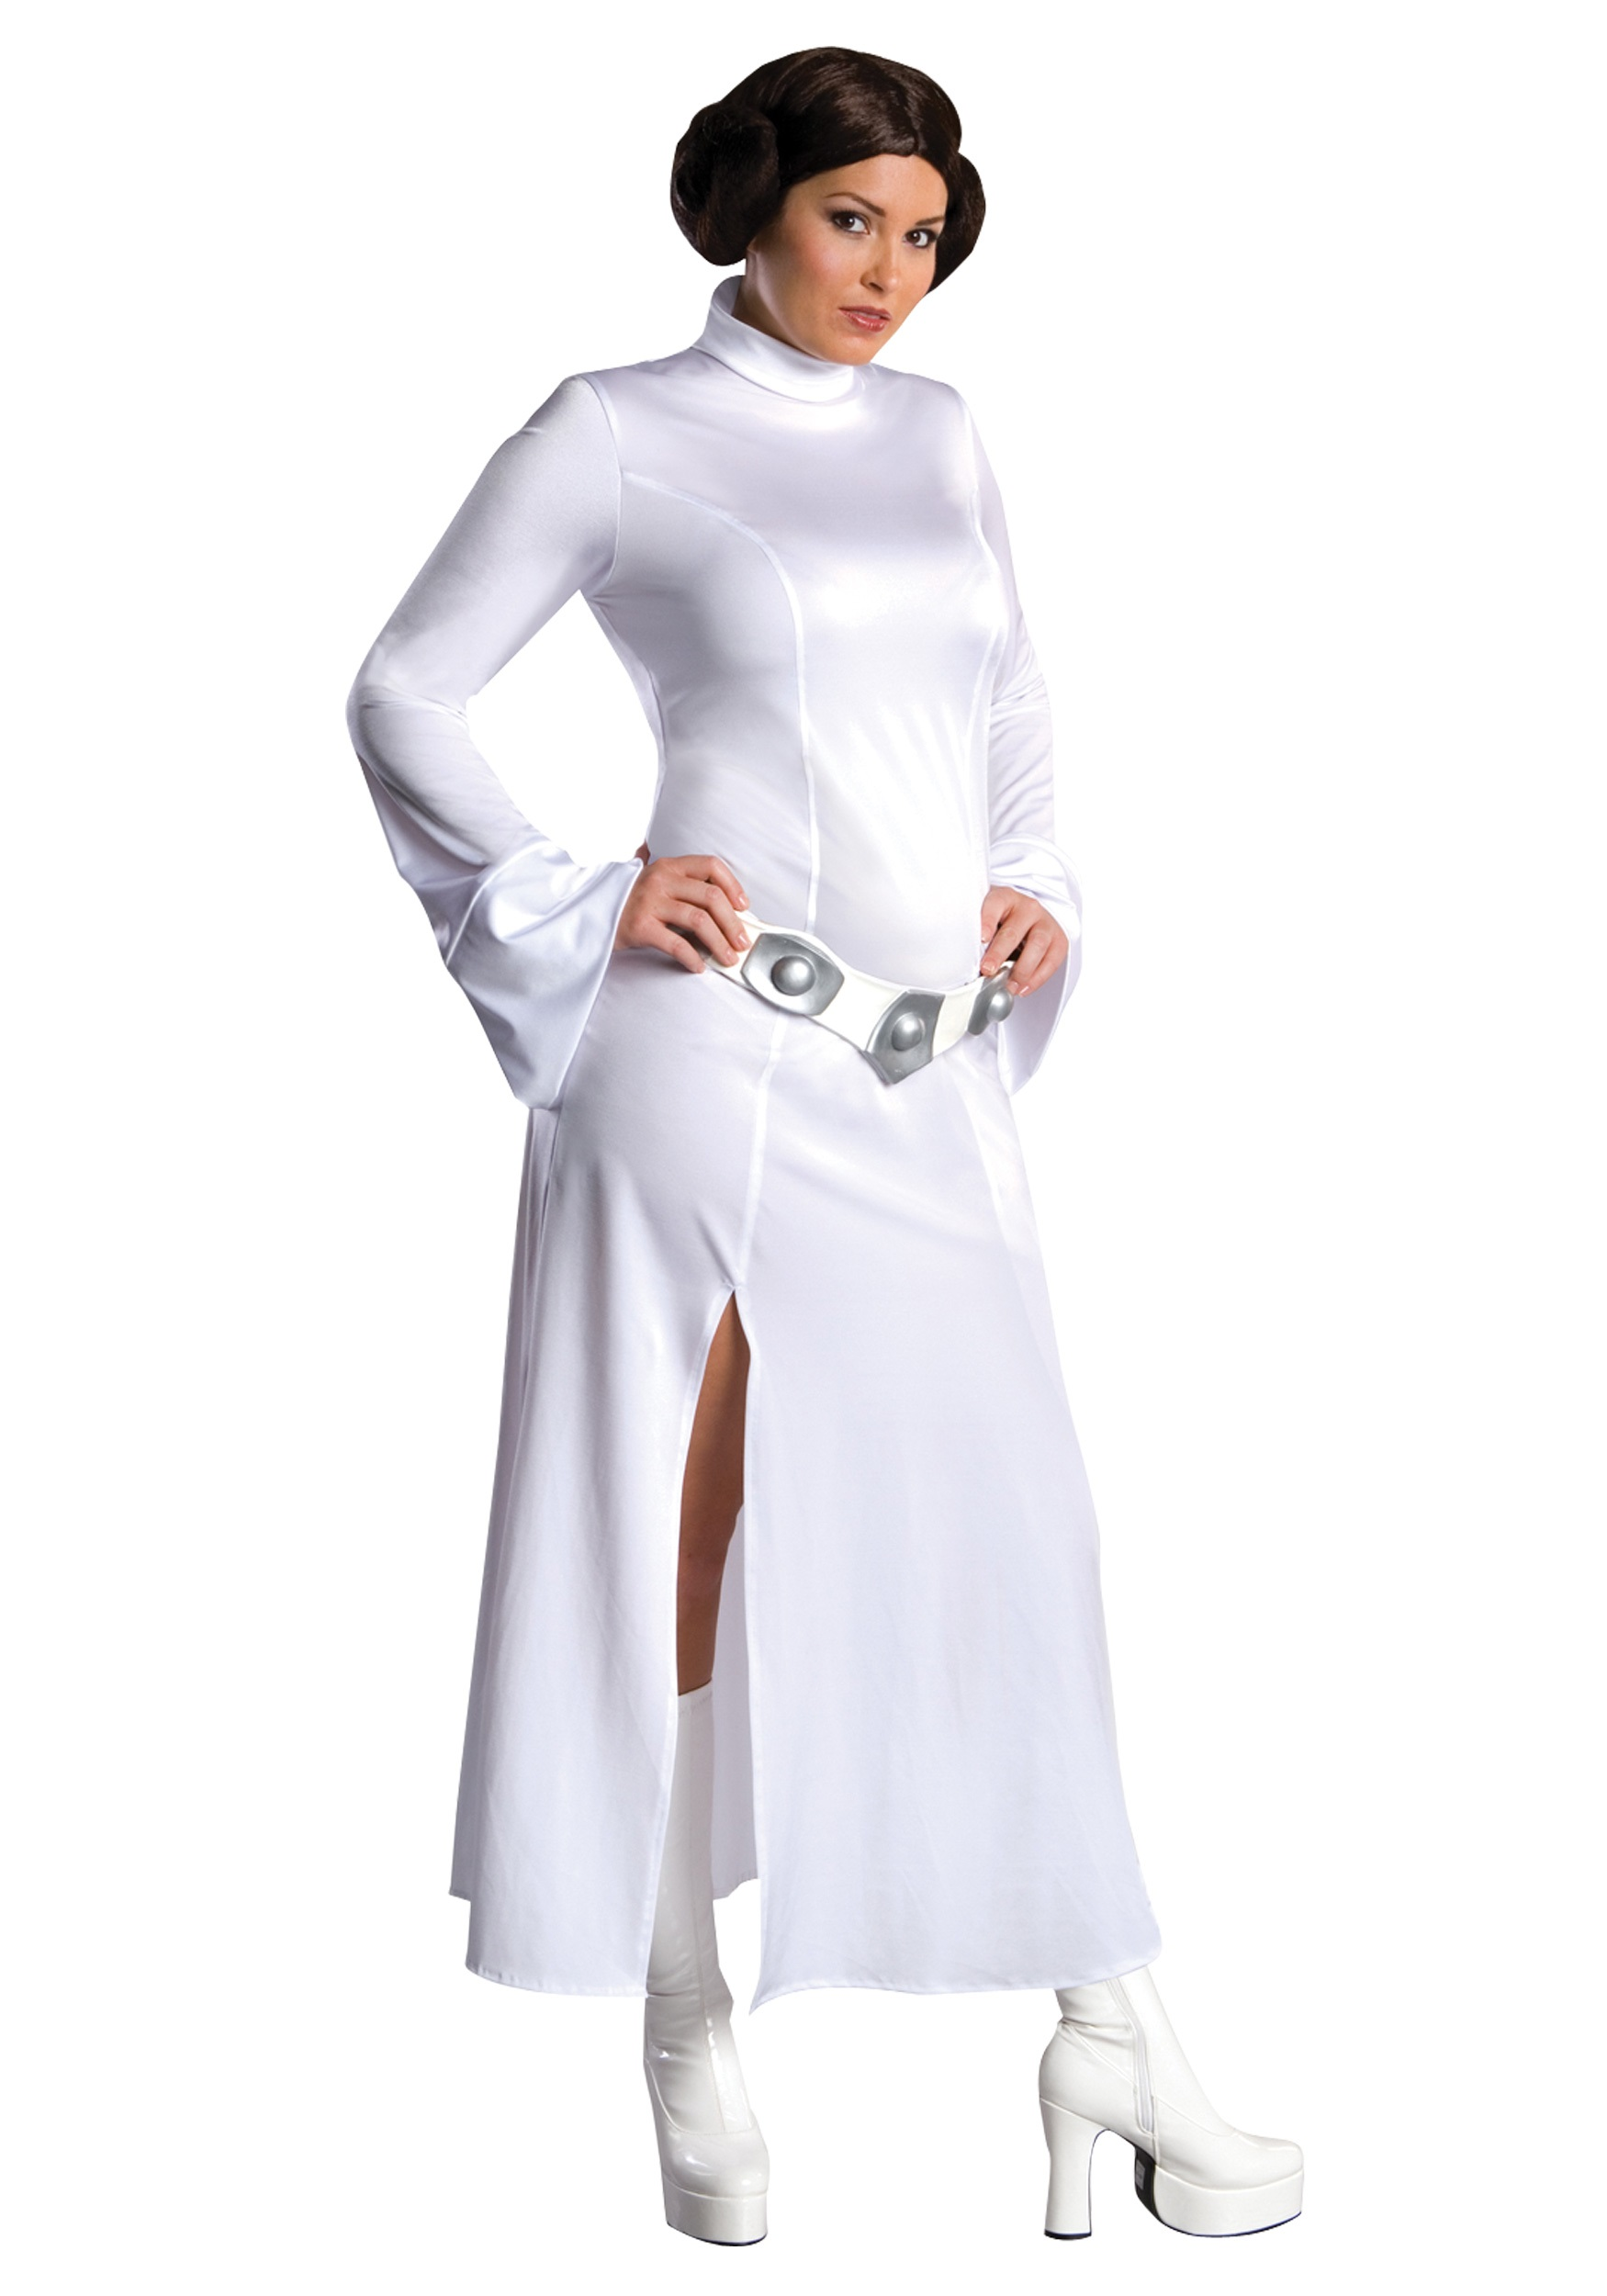 Princess Leia Costume Plus Size Plus Size Halloween Costume